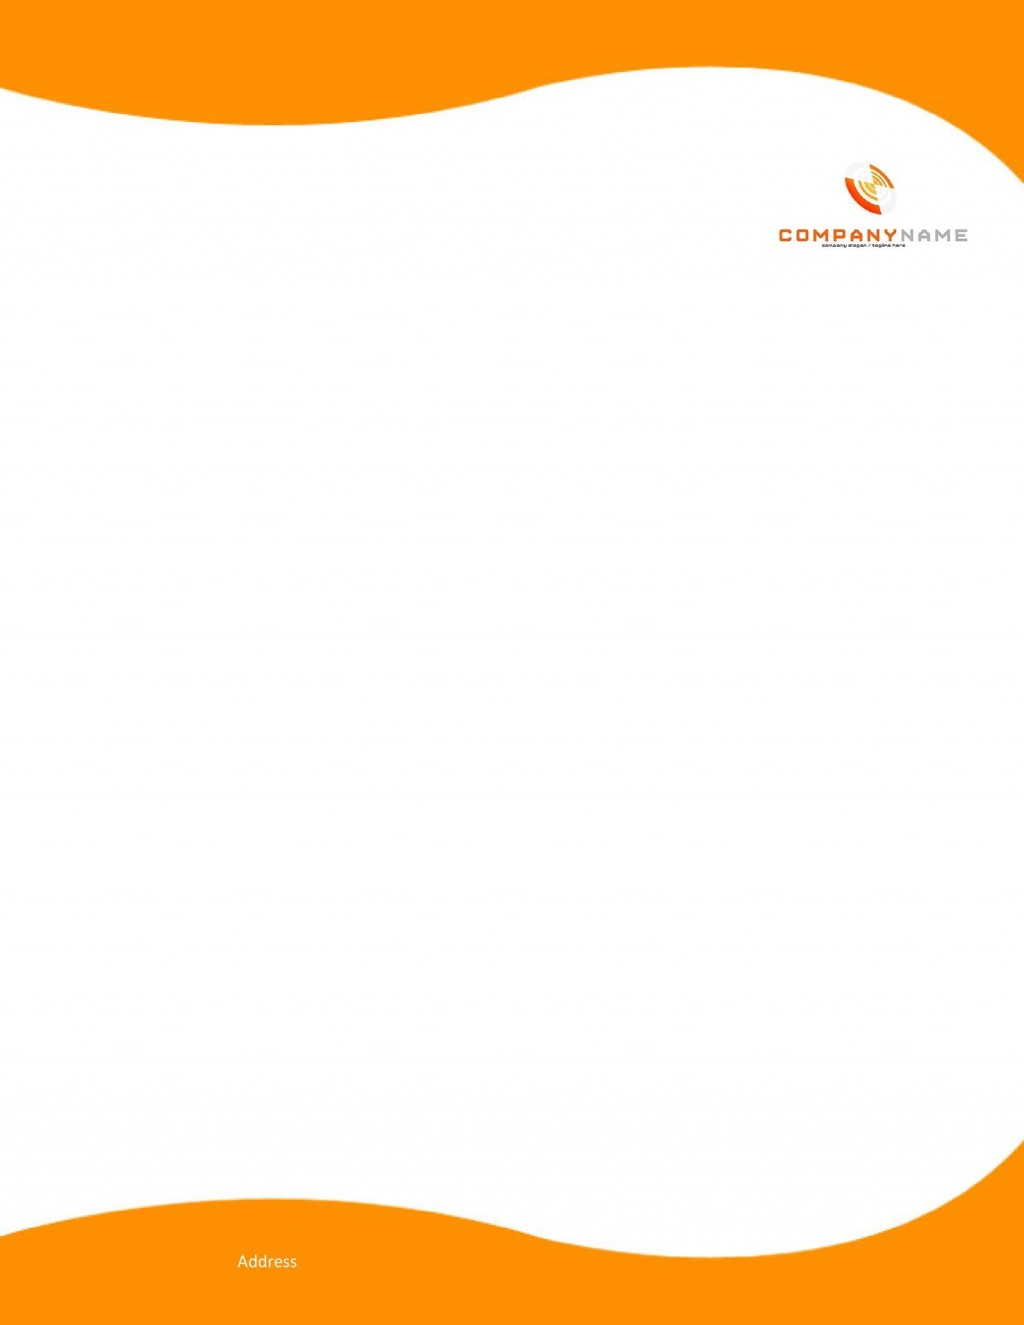 006 Unusual Letterhead Format Excel Free Download Picture Large